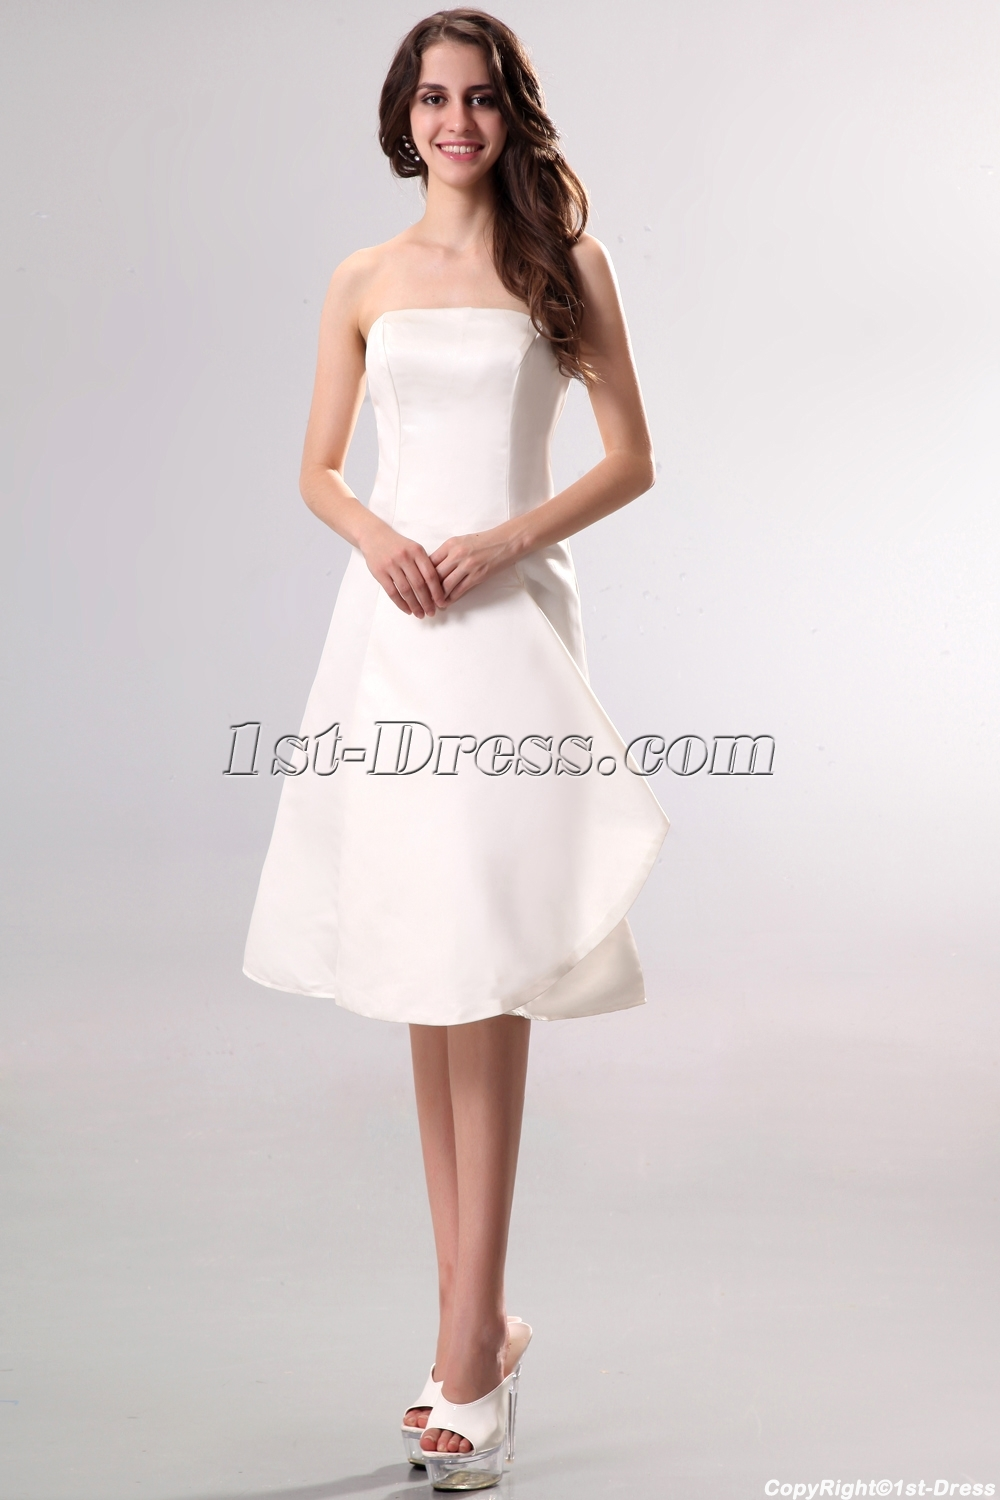 Strapless Simple Short Summer Wedding Dress 1st